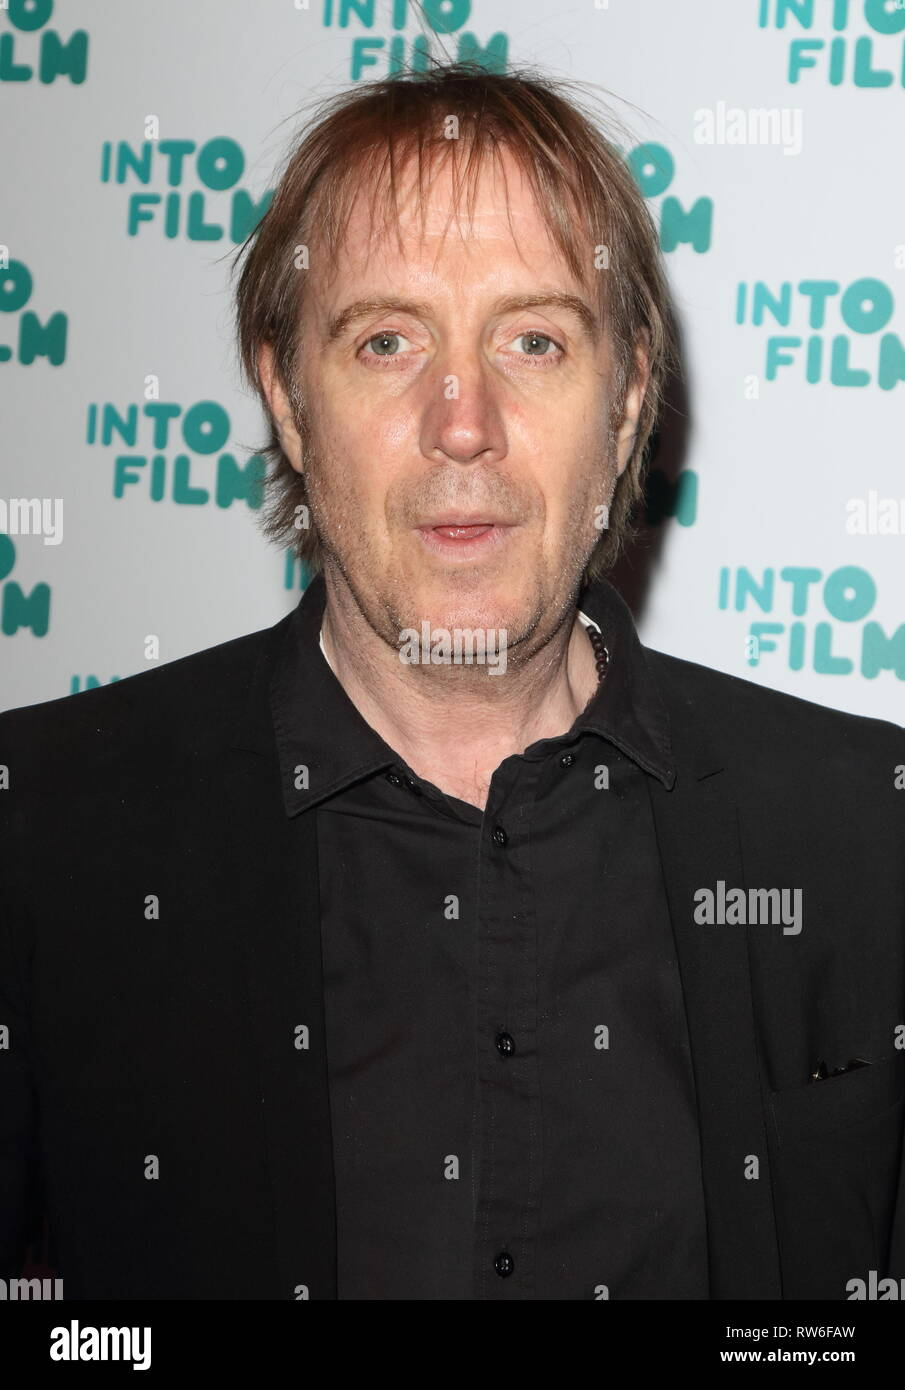 Rhys Ifans seen during the Into Film Awards 2019 at the Odeon Luxe cinema, Leicester Square in London. - Stock Image